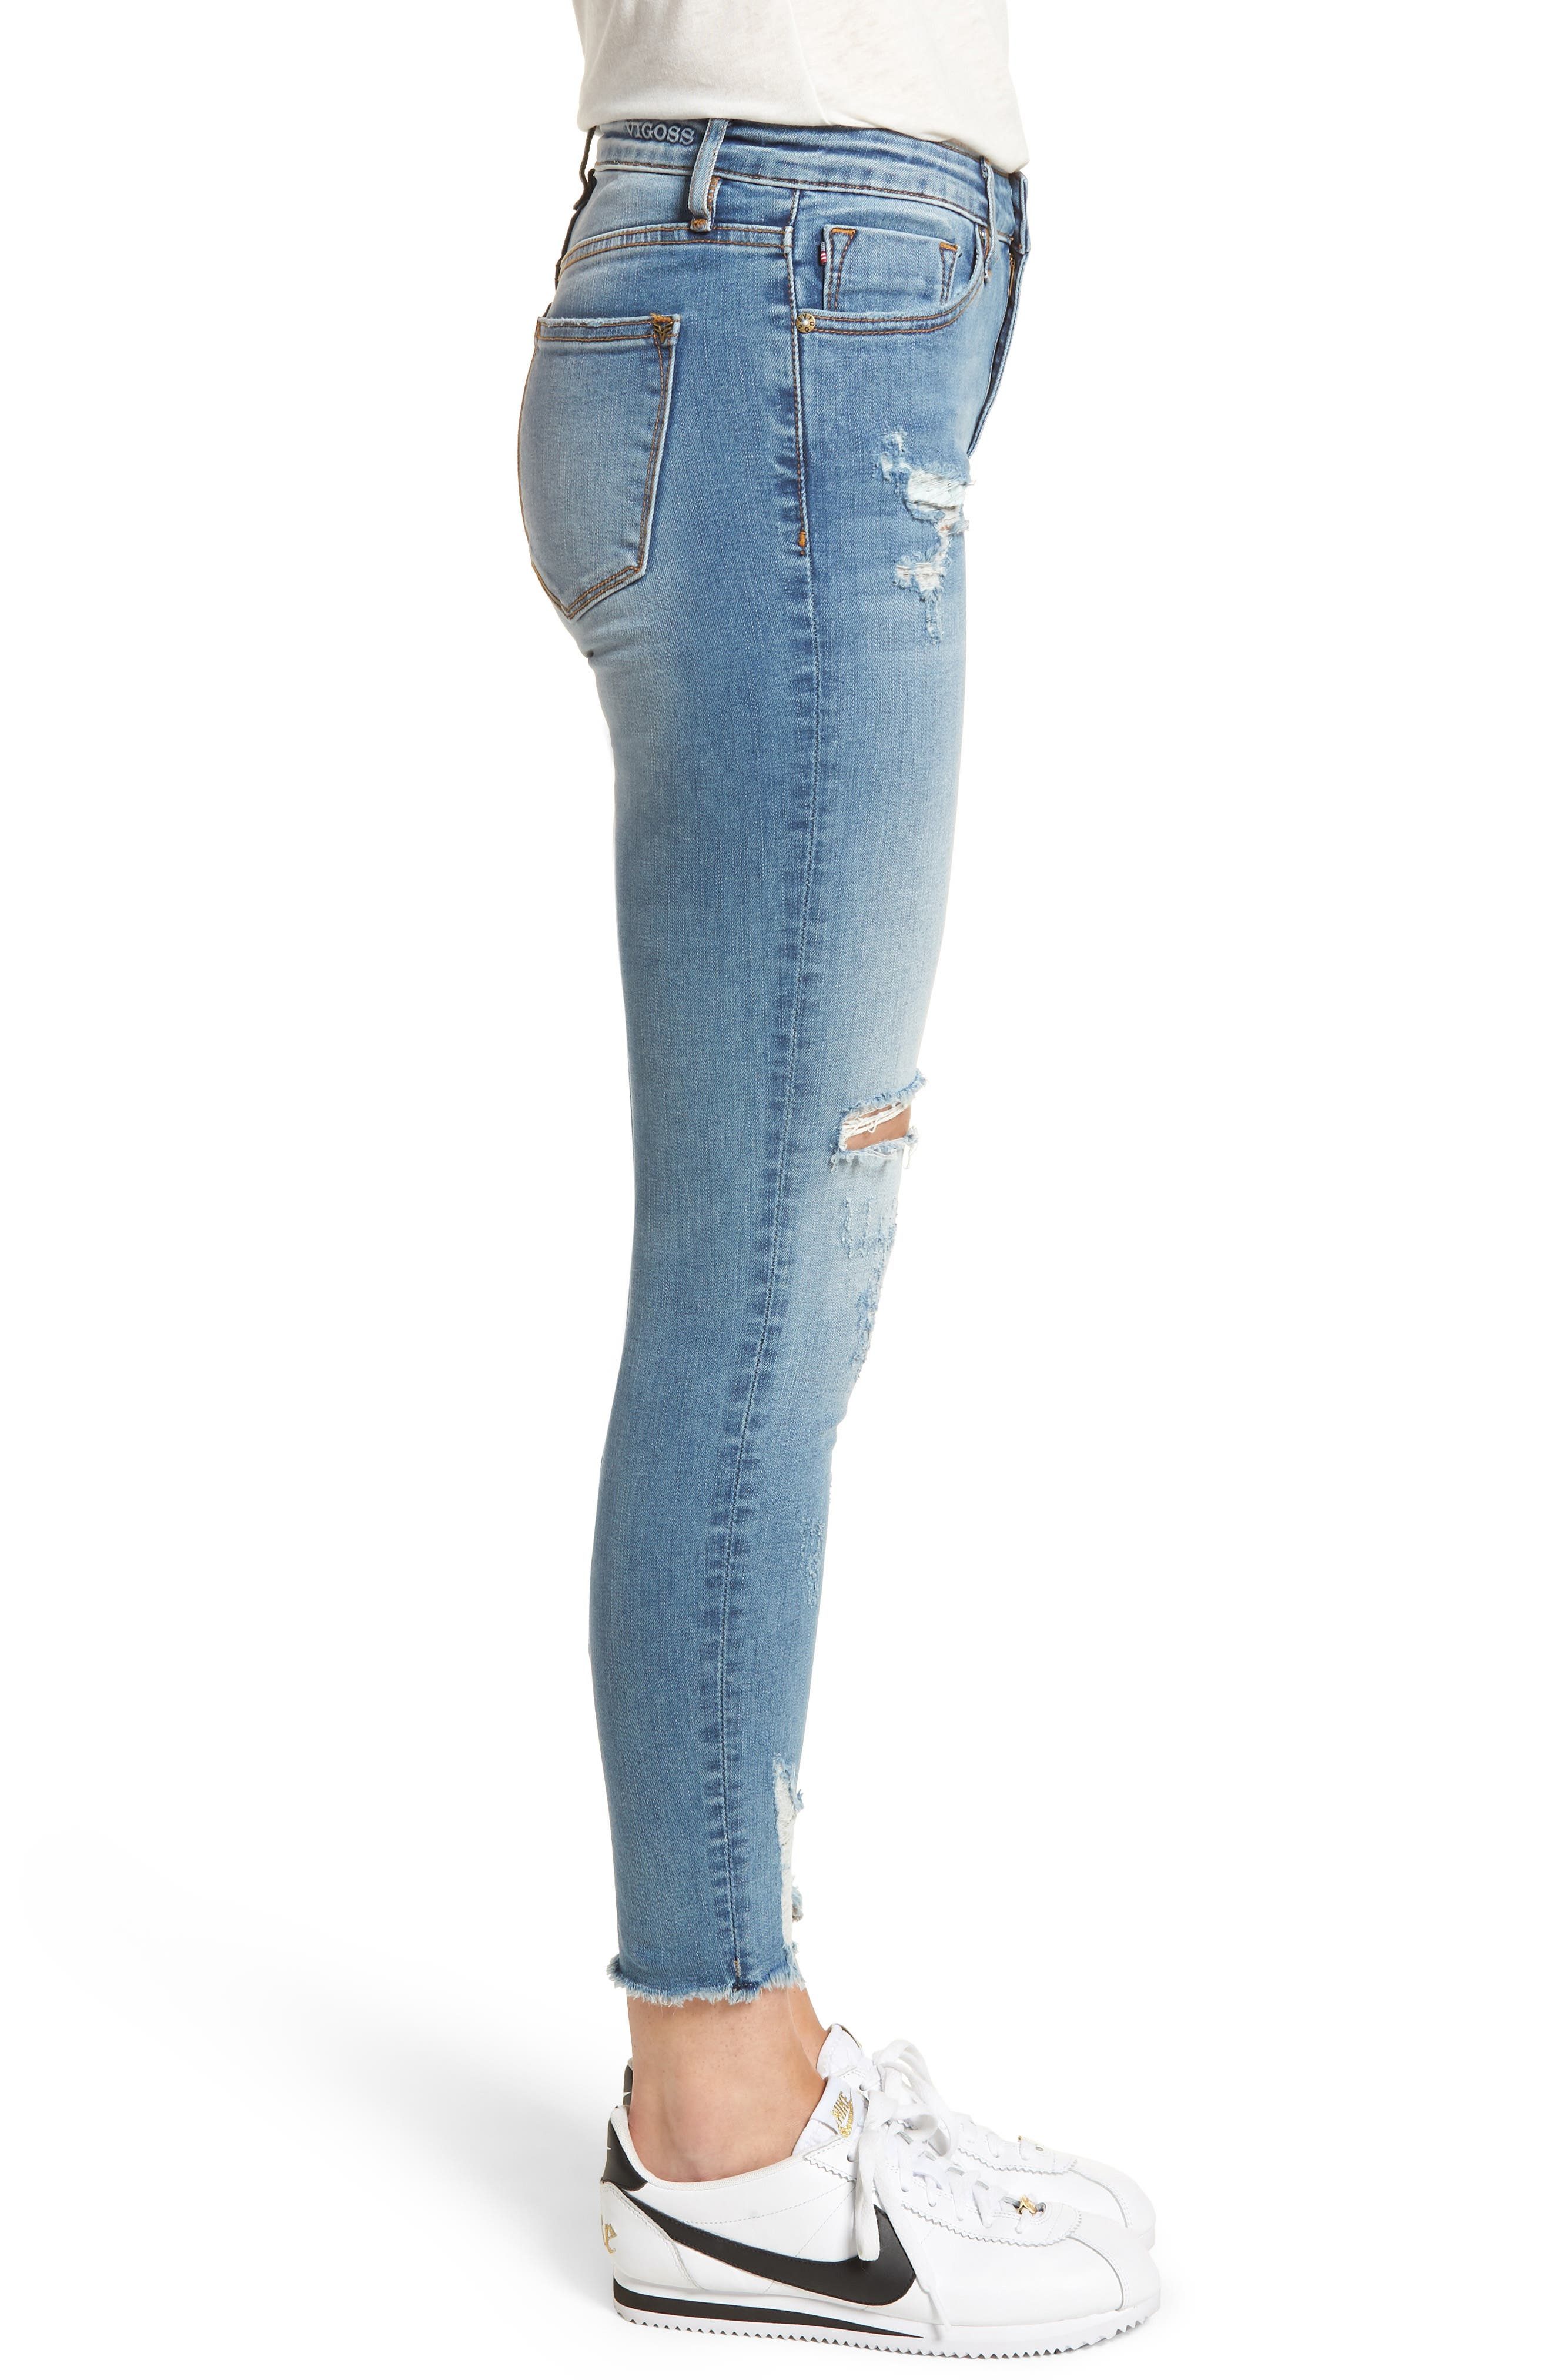 Marley Distressed Skinny Jeans,                             Alternate thumbnail 3, color,                             Medium Wash